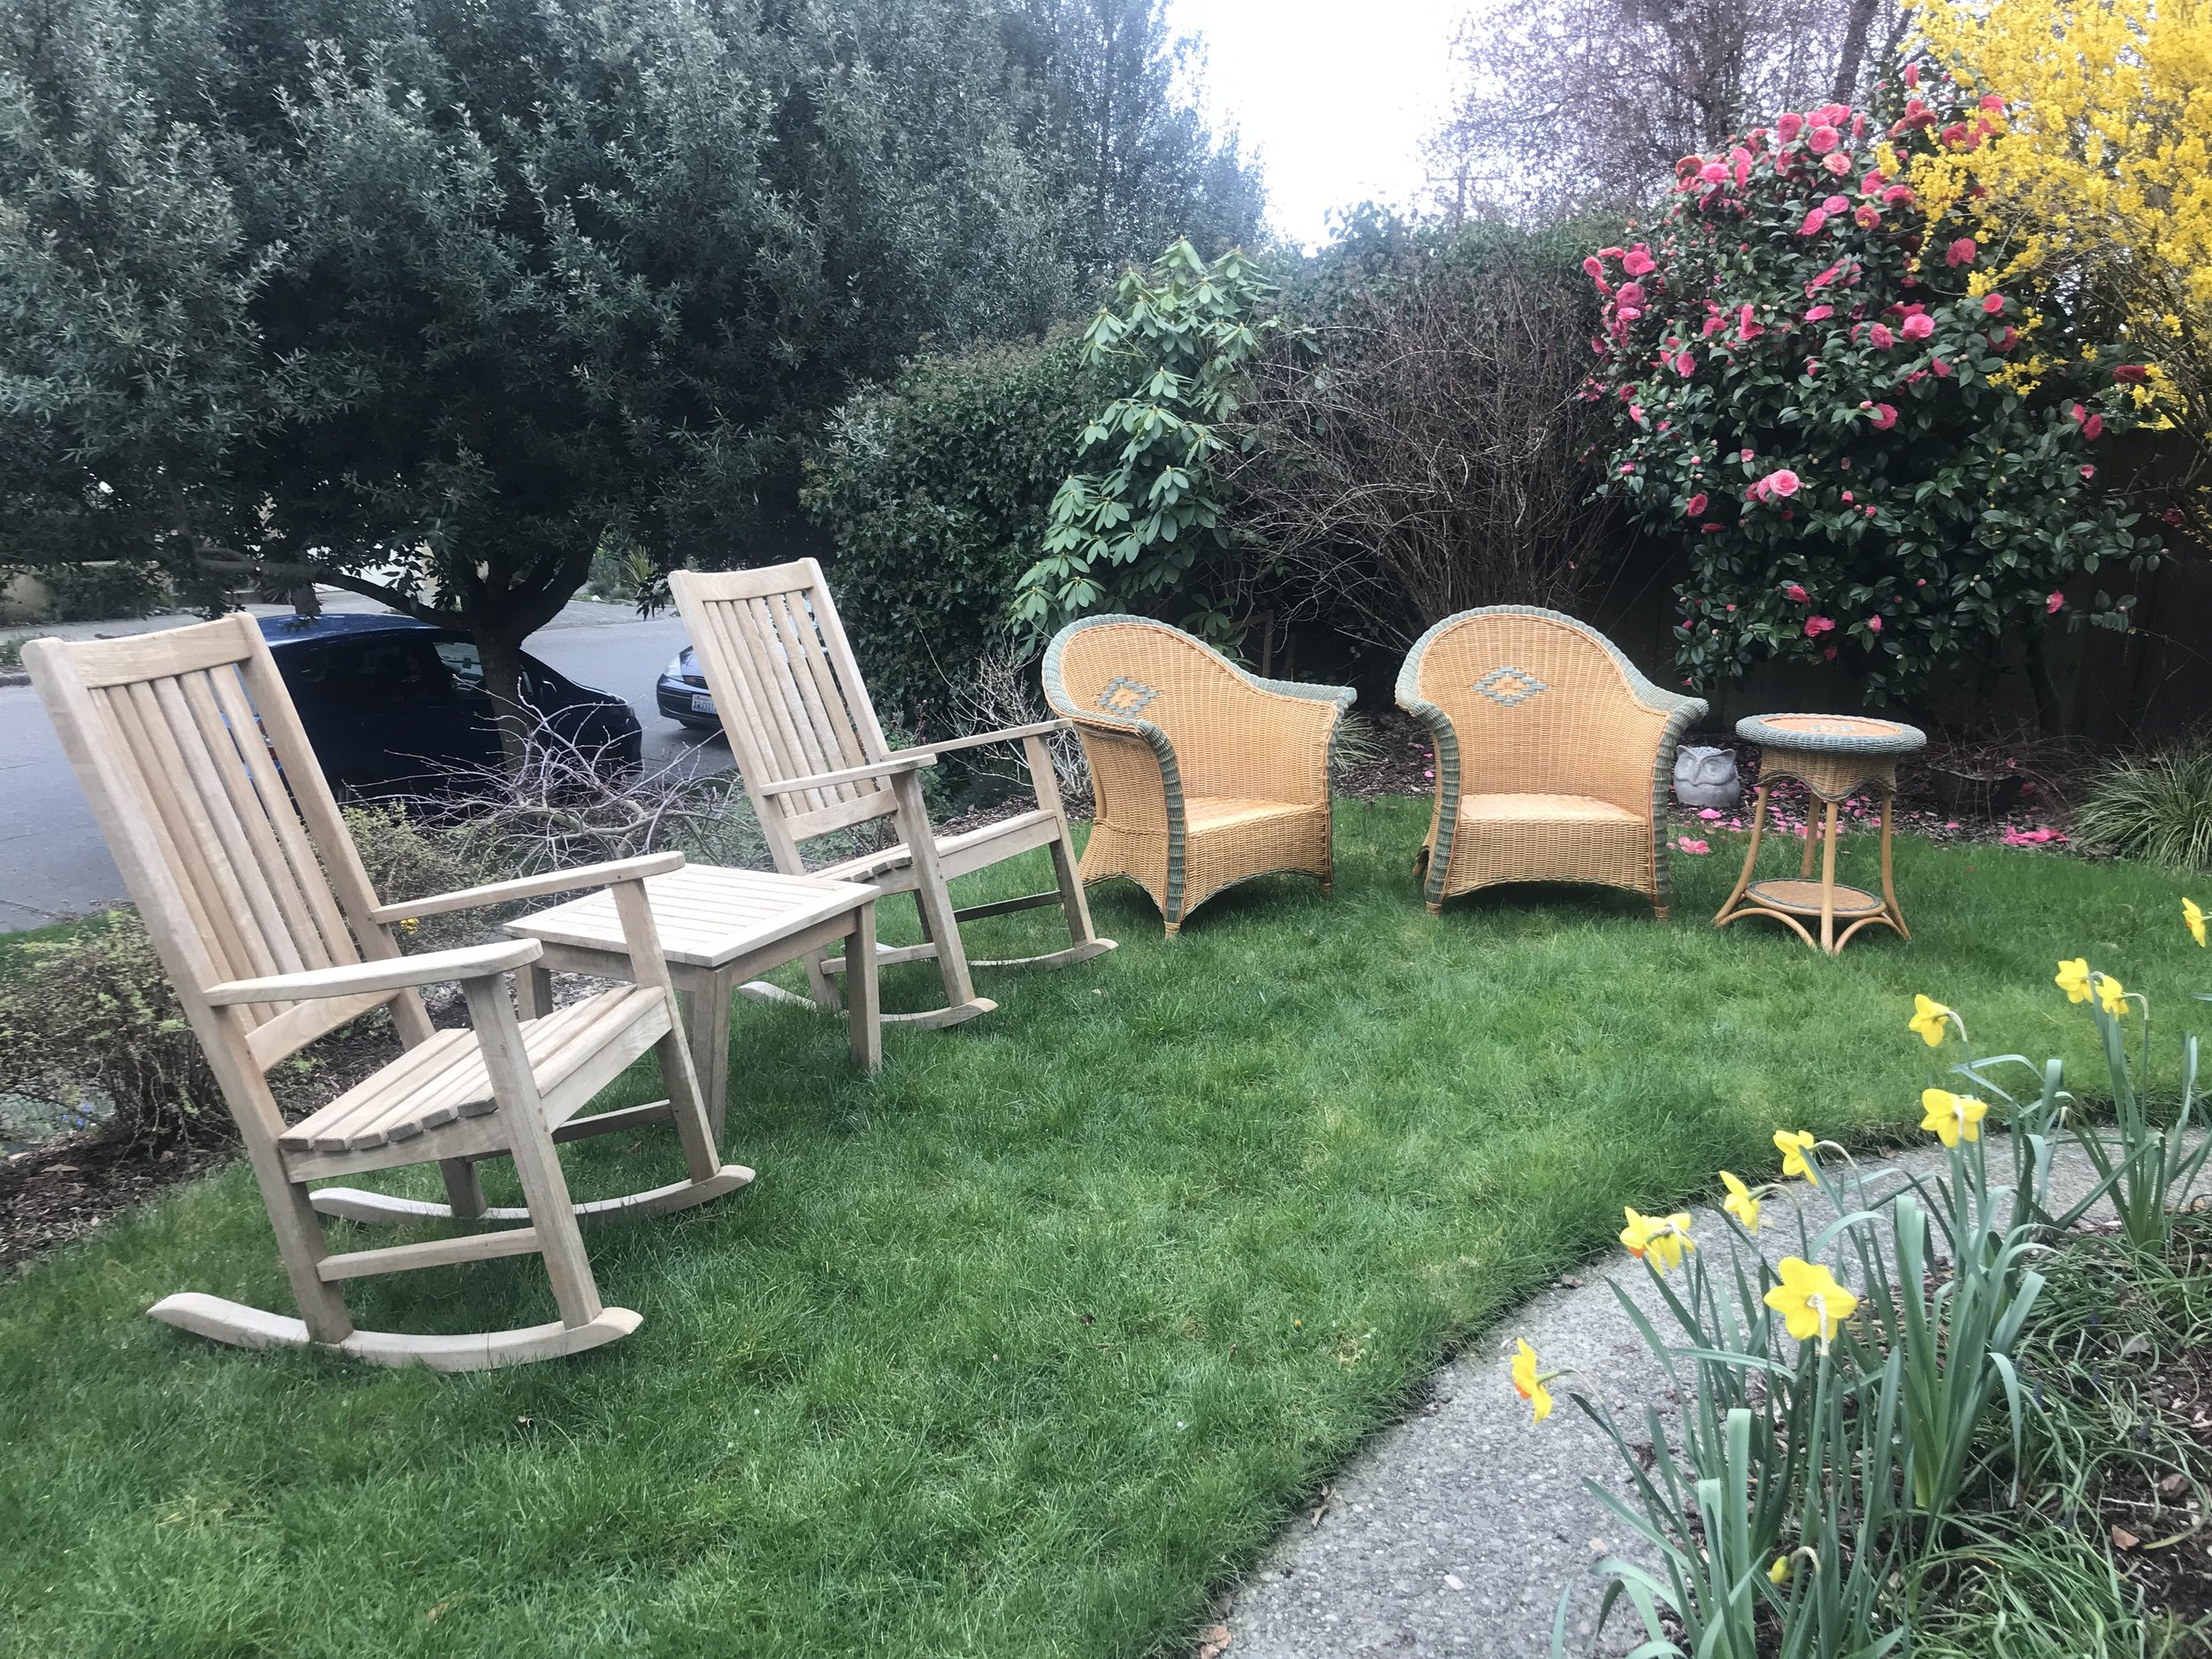 The wicker and teak furniture before, and that ghastly path again.